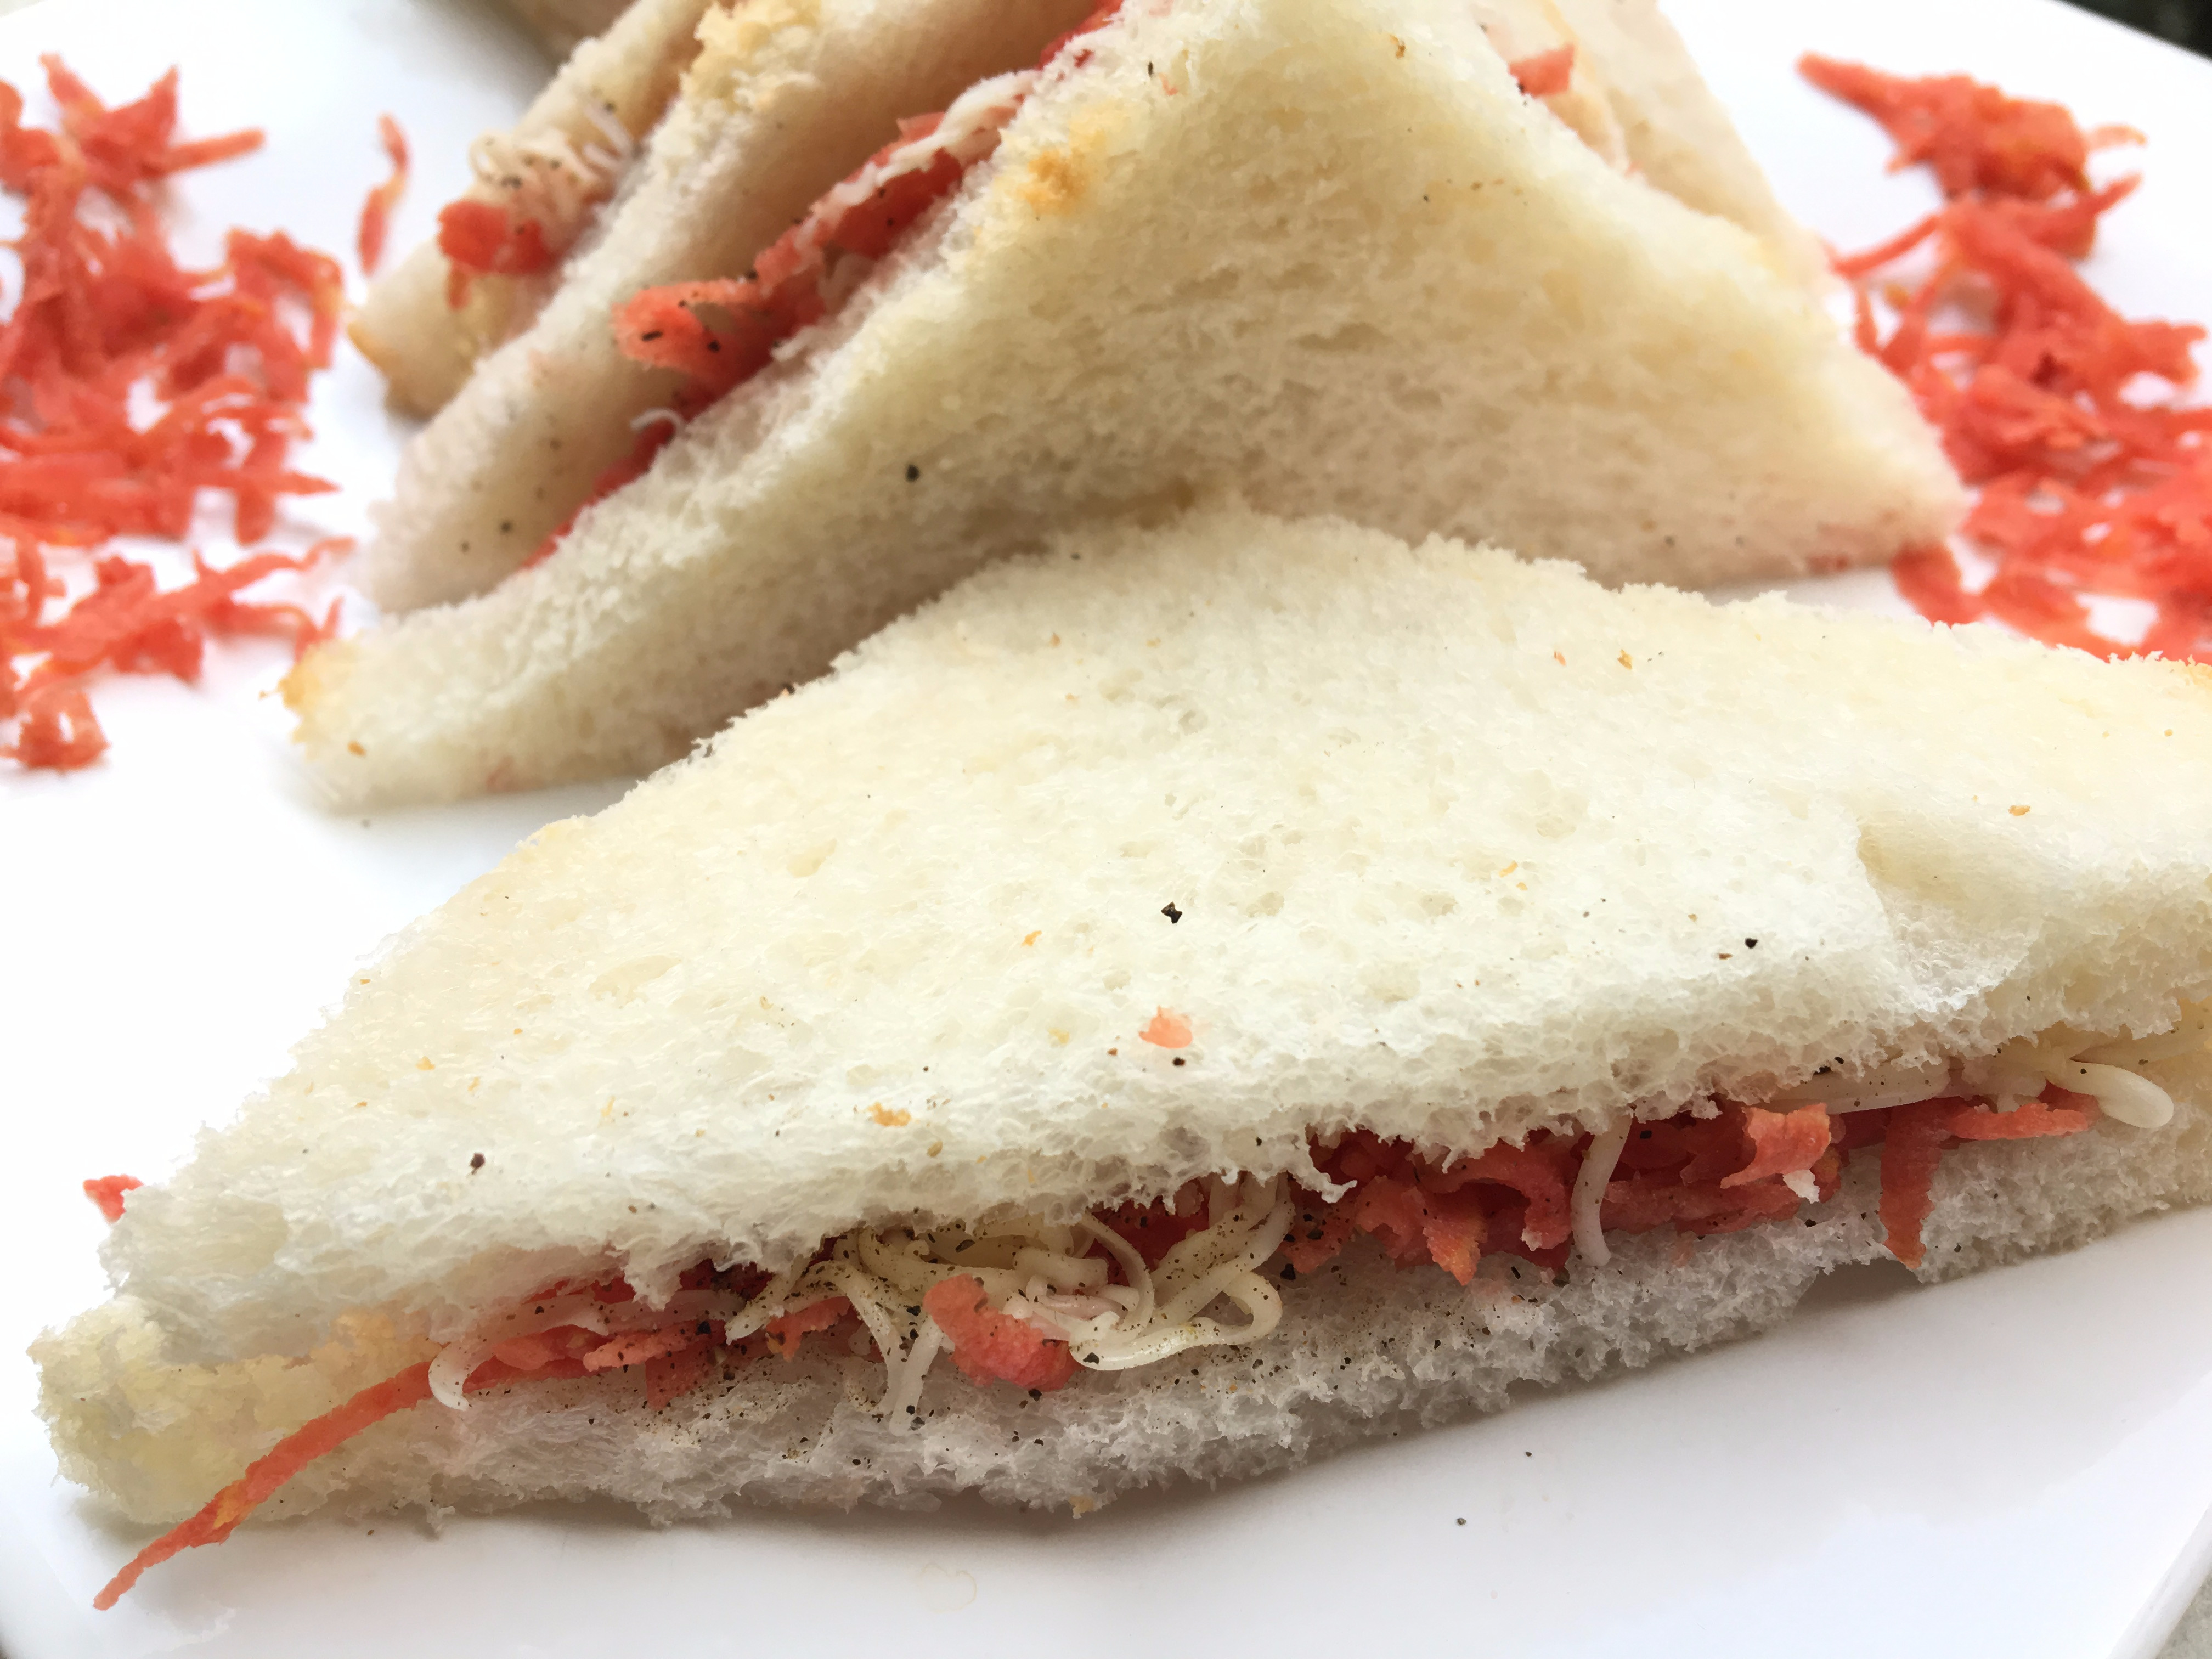 Easy and yummy Carrot and Cheese Sandwich!